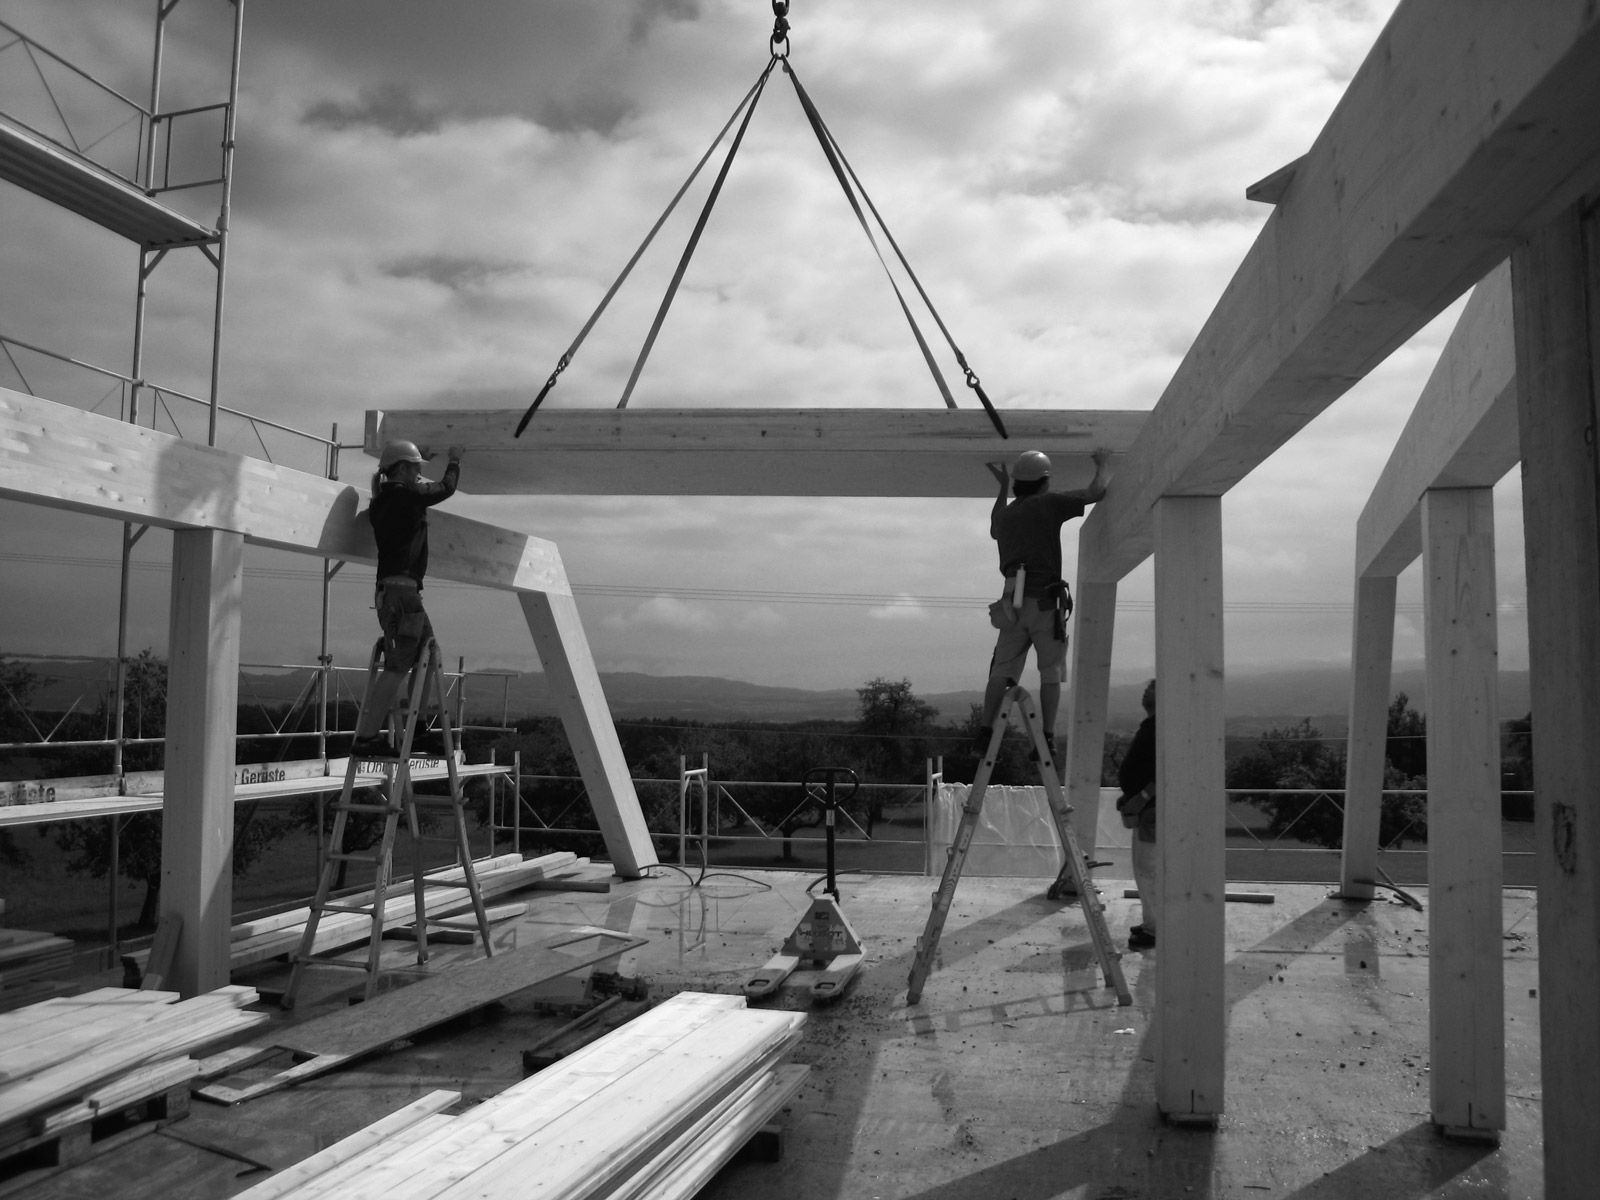 wiggwil farm, roof space during construction